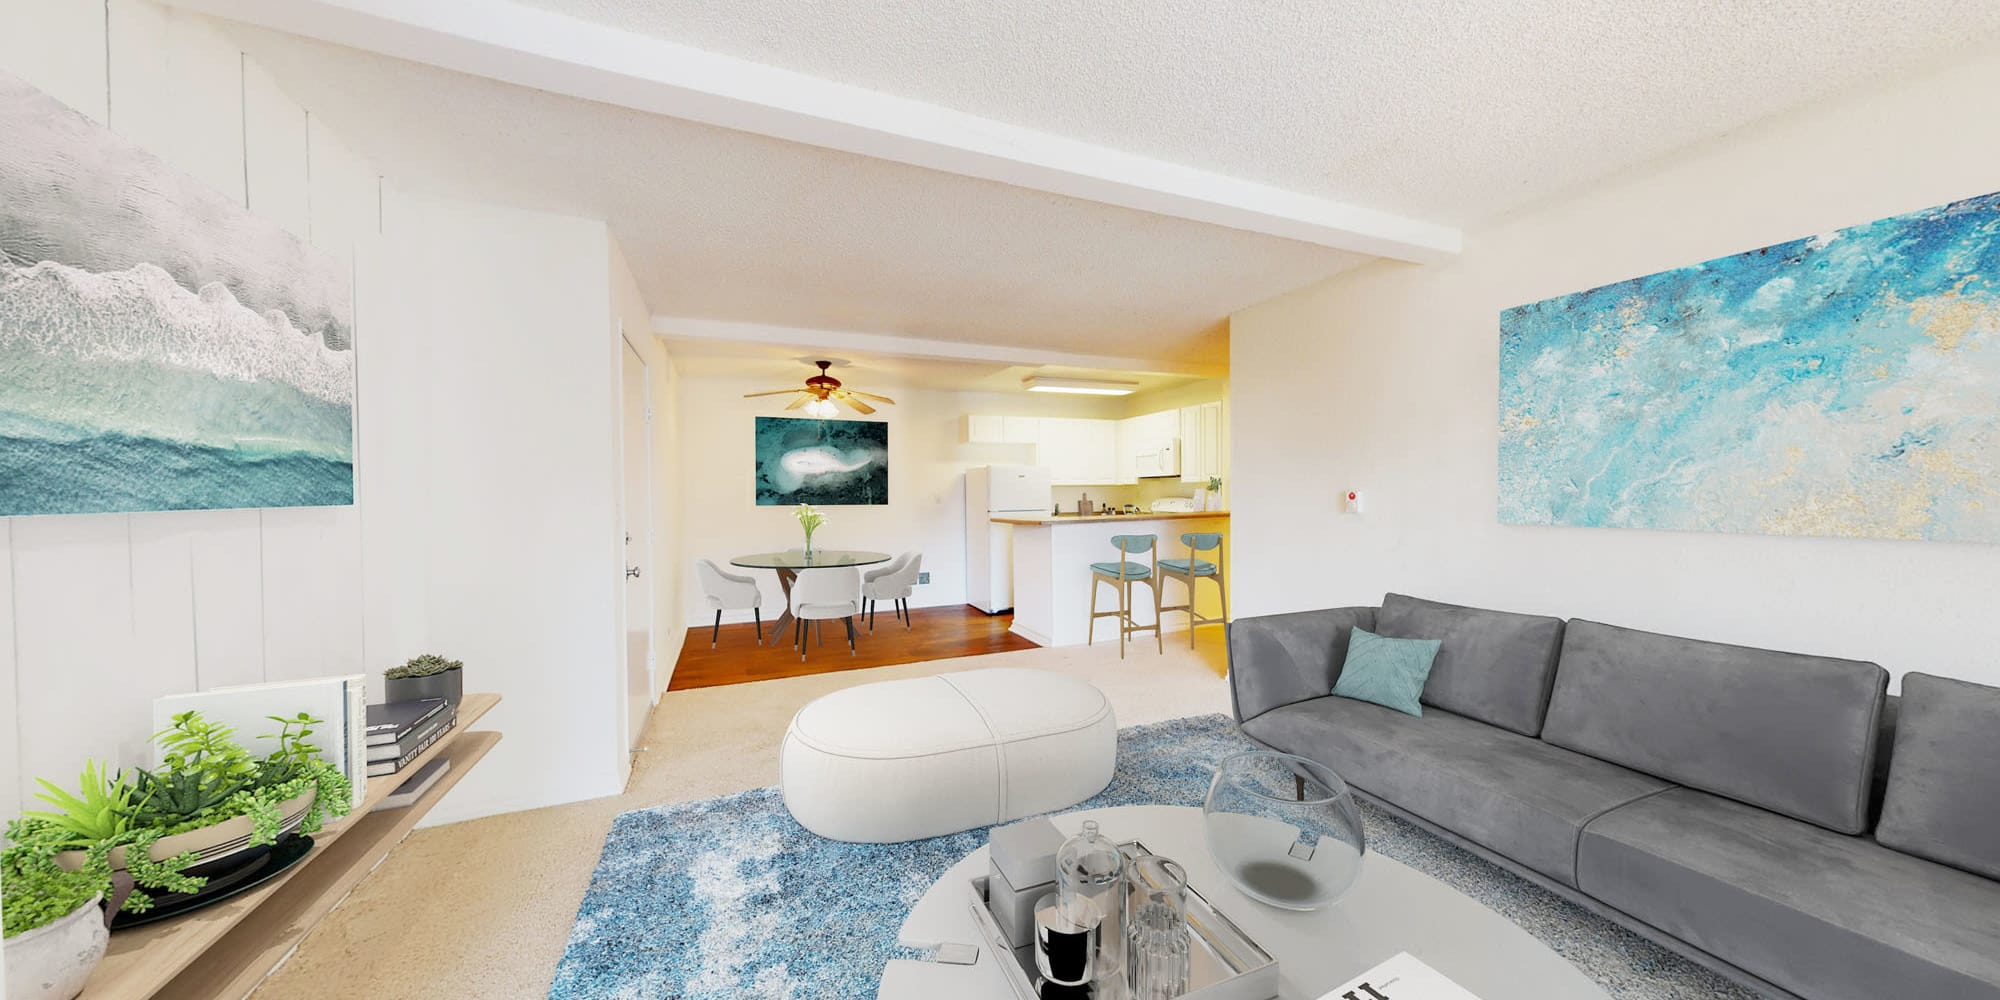 Spacious open-concept living area in a model apartment at Mariners Village in Marina del Rey, California